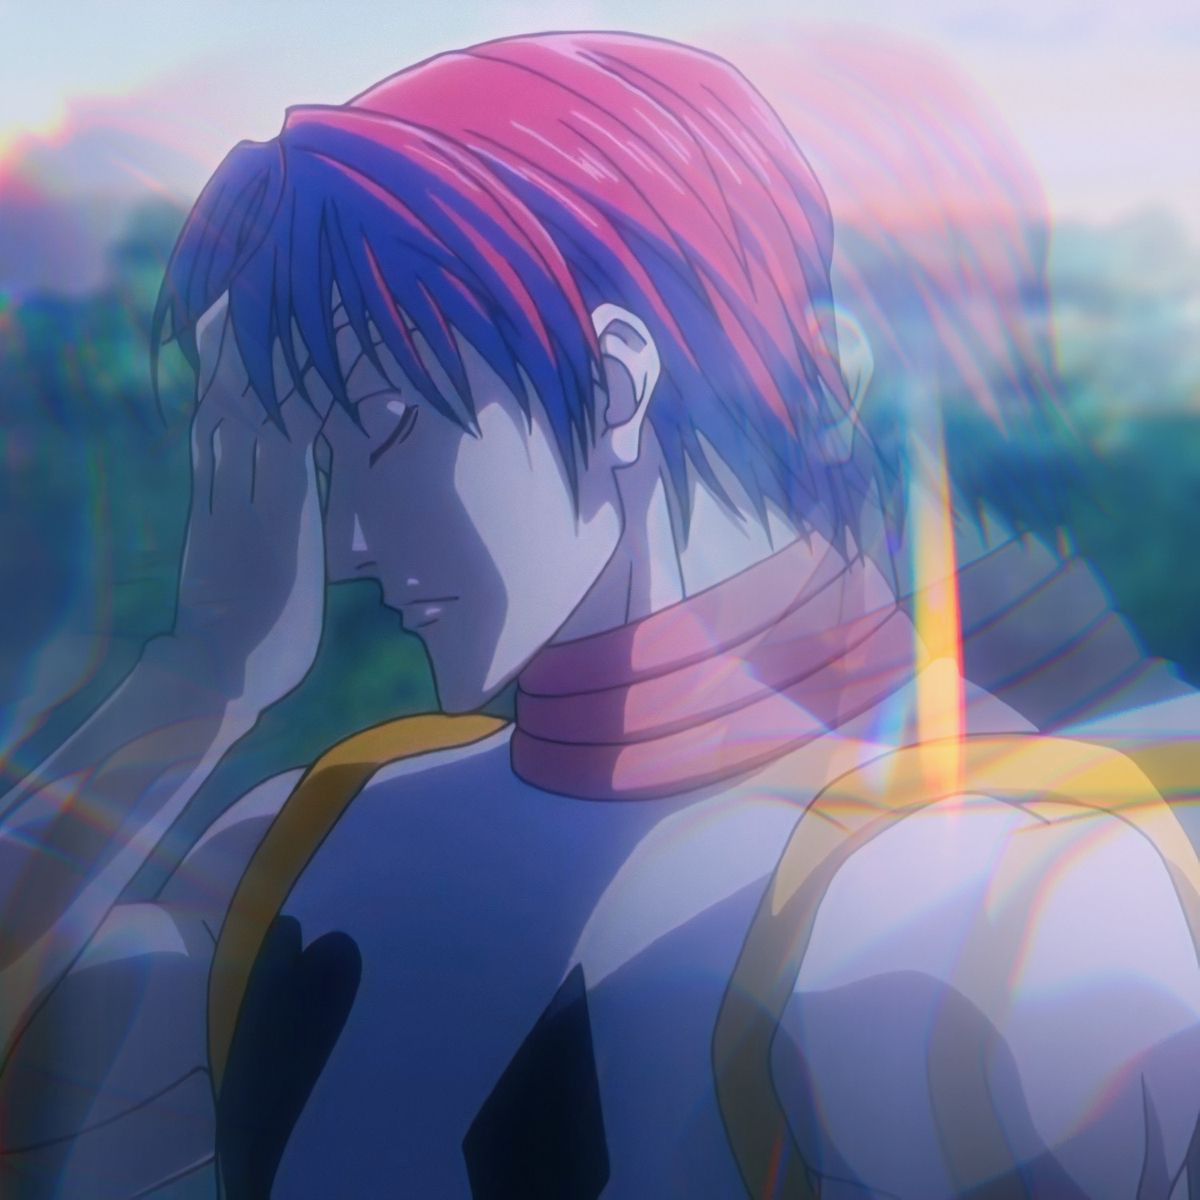 Hisoka Morow Hxh Hisoka Hunter Anime Anime Boy